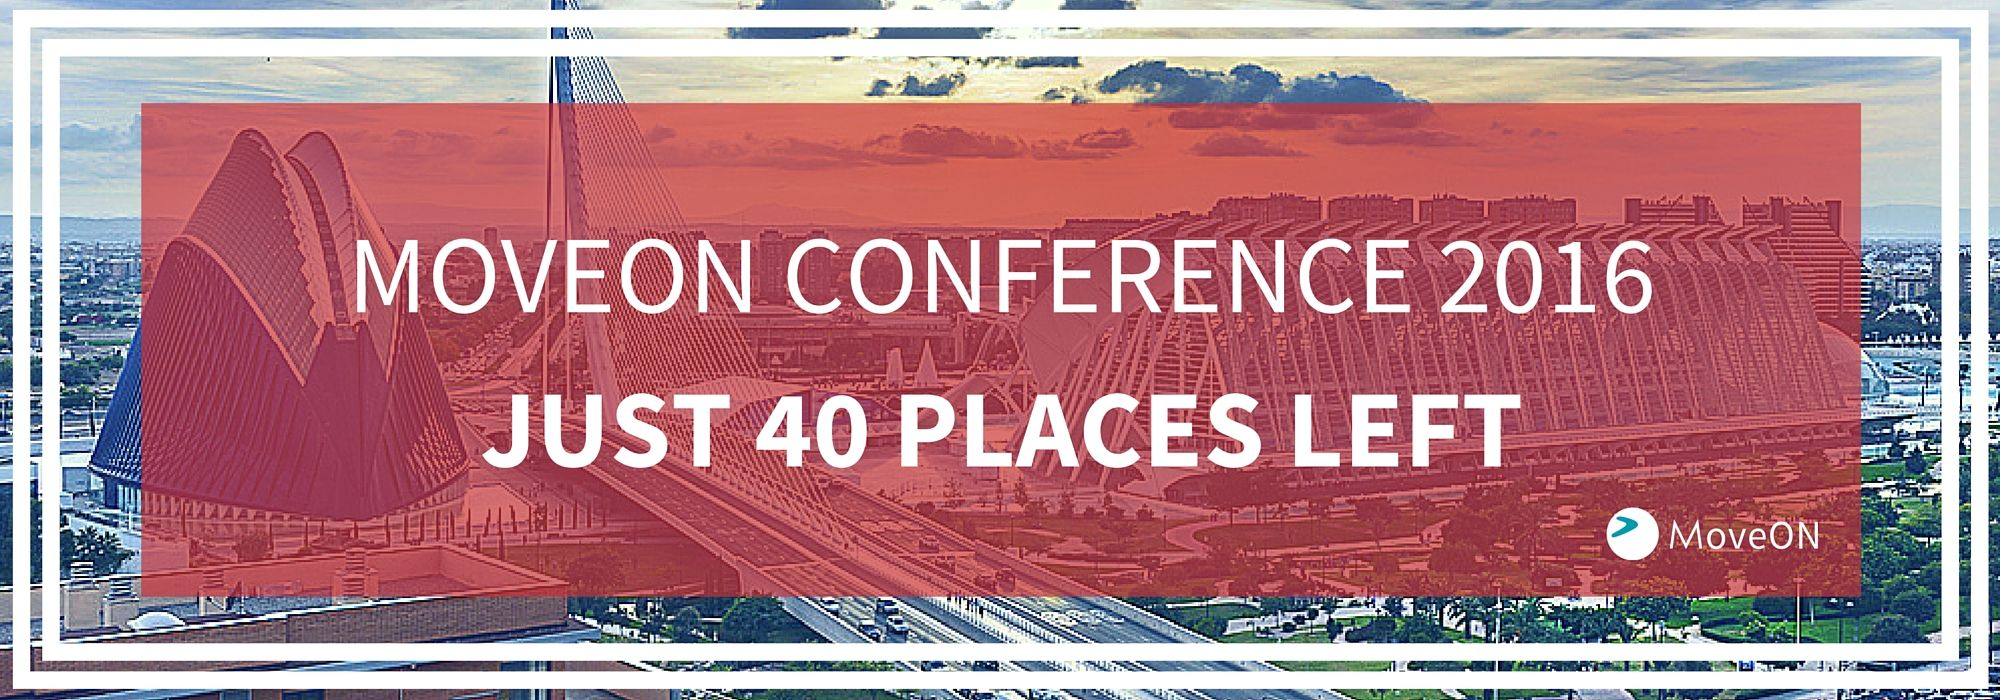 MOVEON CONFERENCE JUST 40 PLACES LEFT (1)